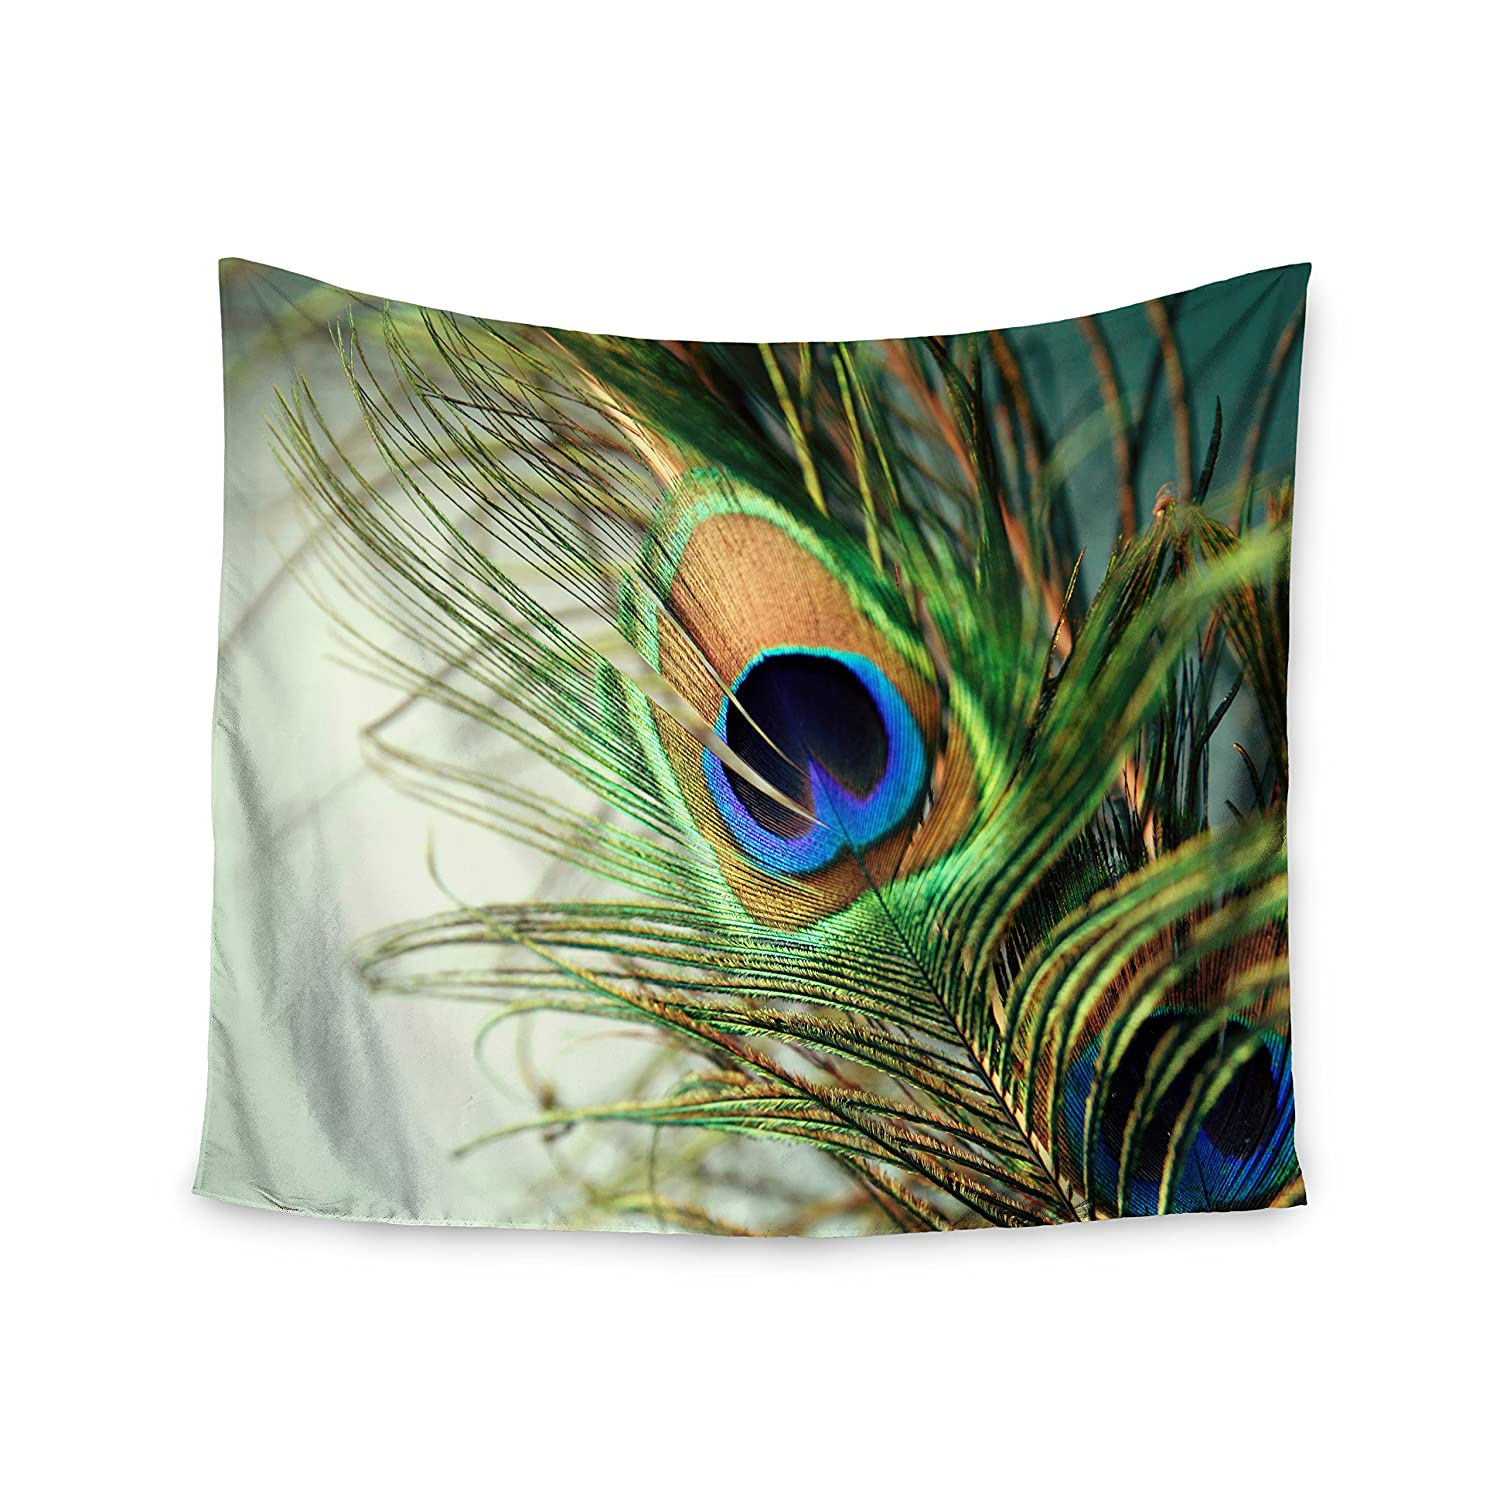 68 X 80 Kess InHouse Sylvia Cook Teal Peacock Feather Wall Tapestry